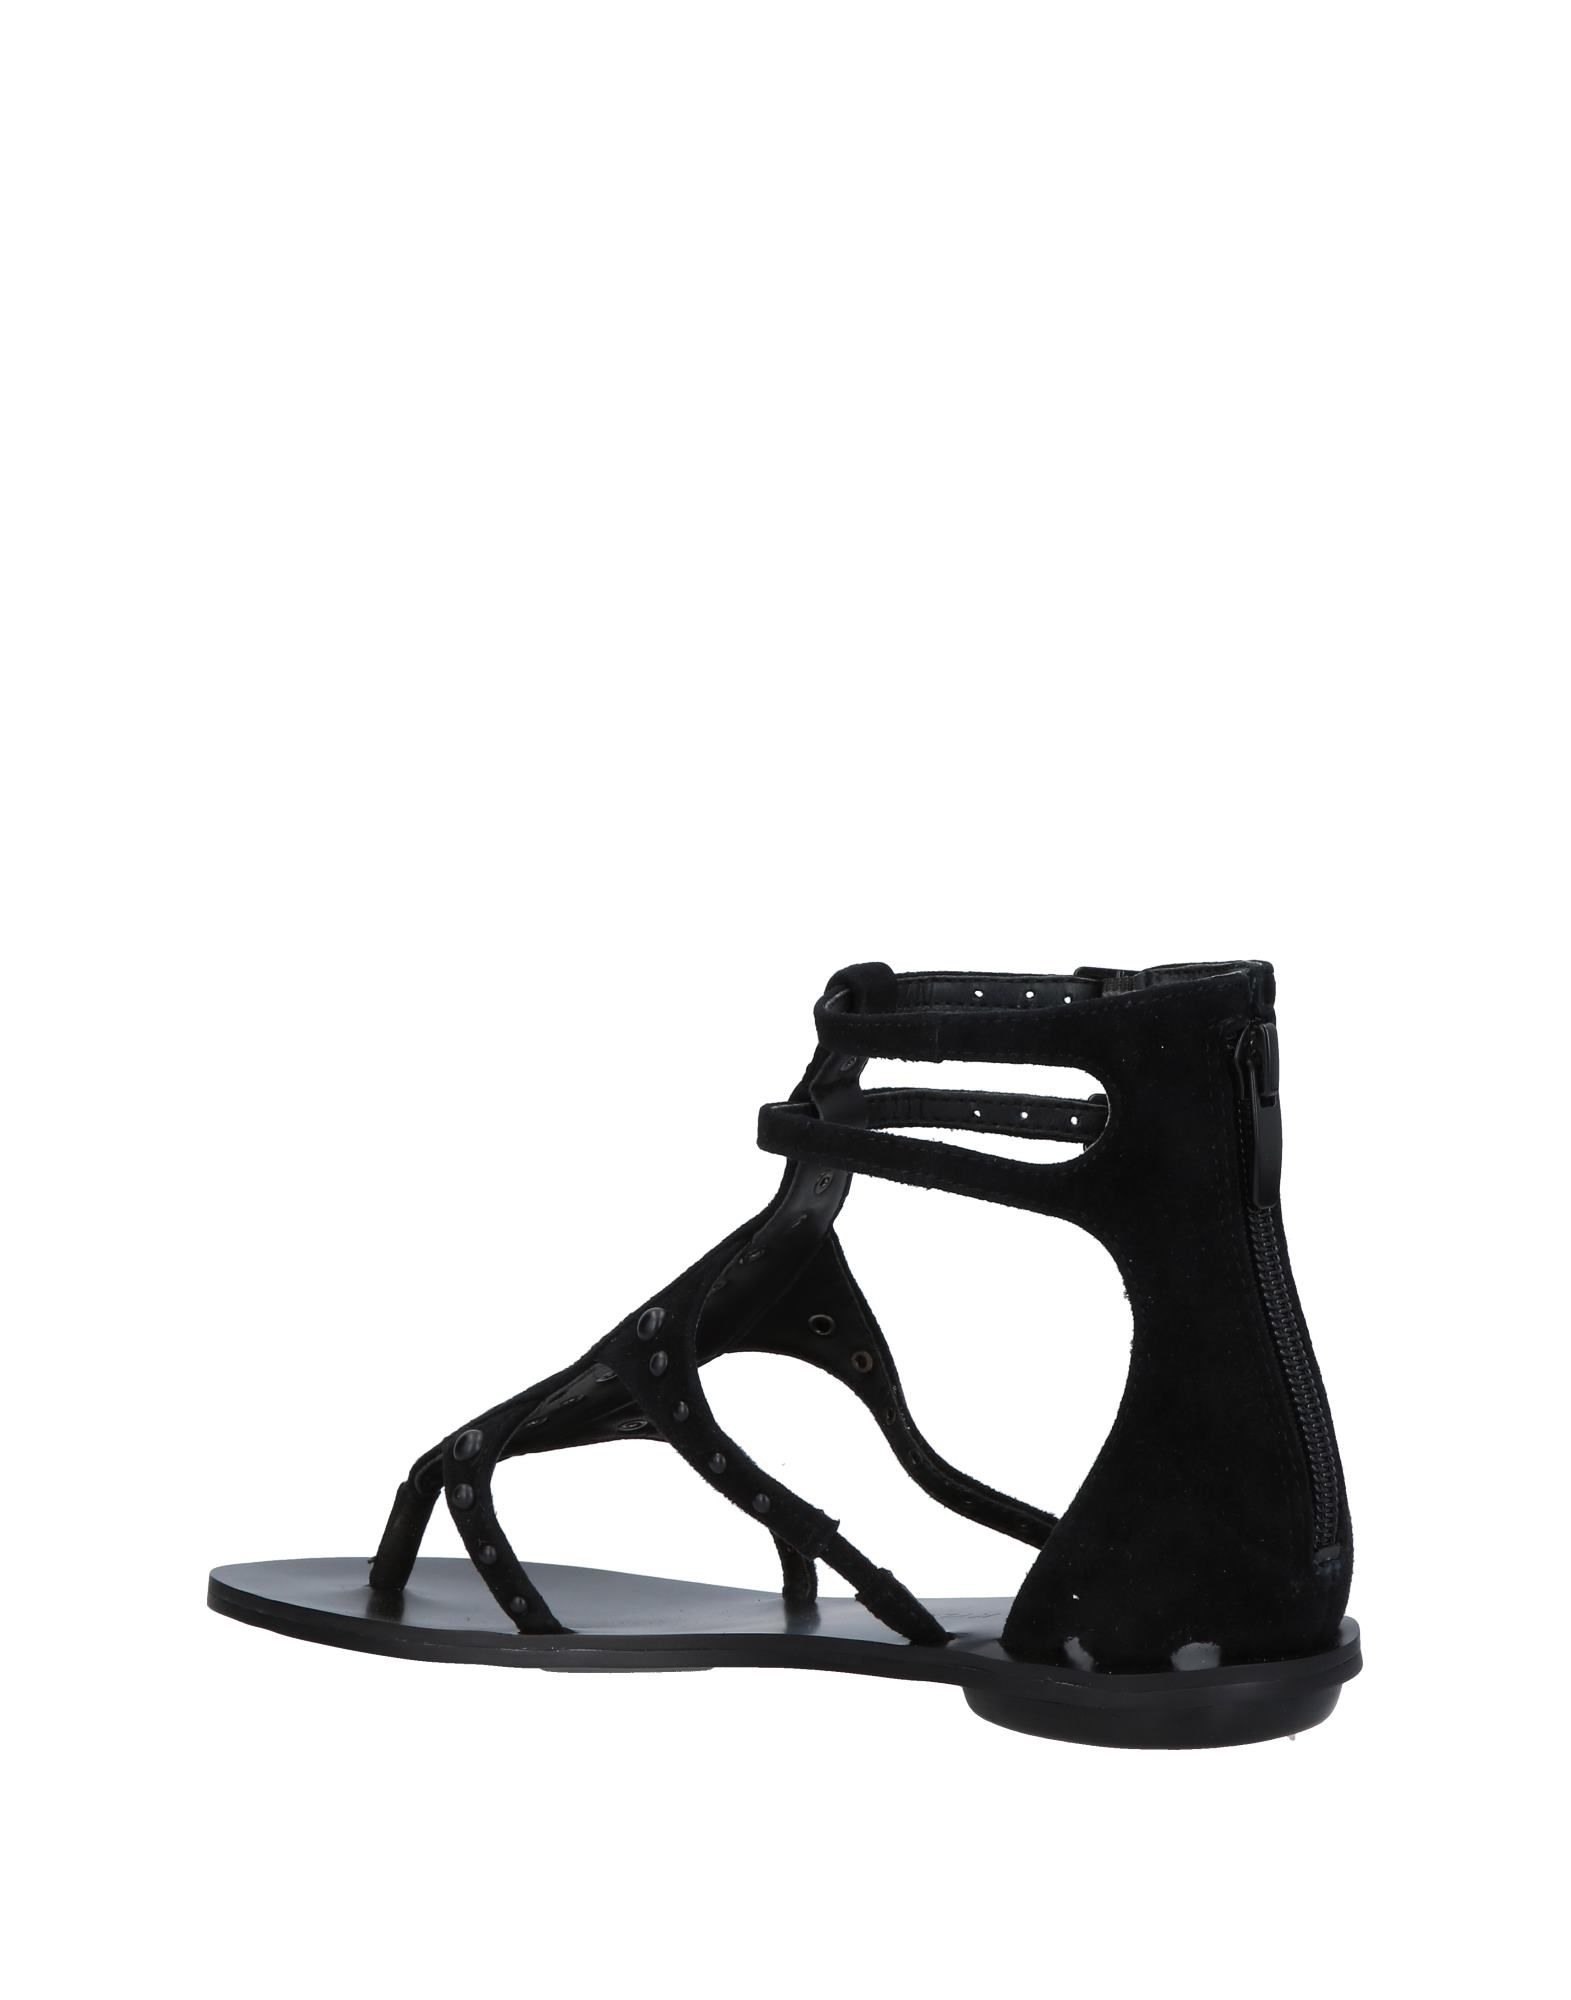 Tongs Kendall + Kylie Femme - Tongs Kendall + Kylie sur